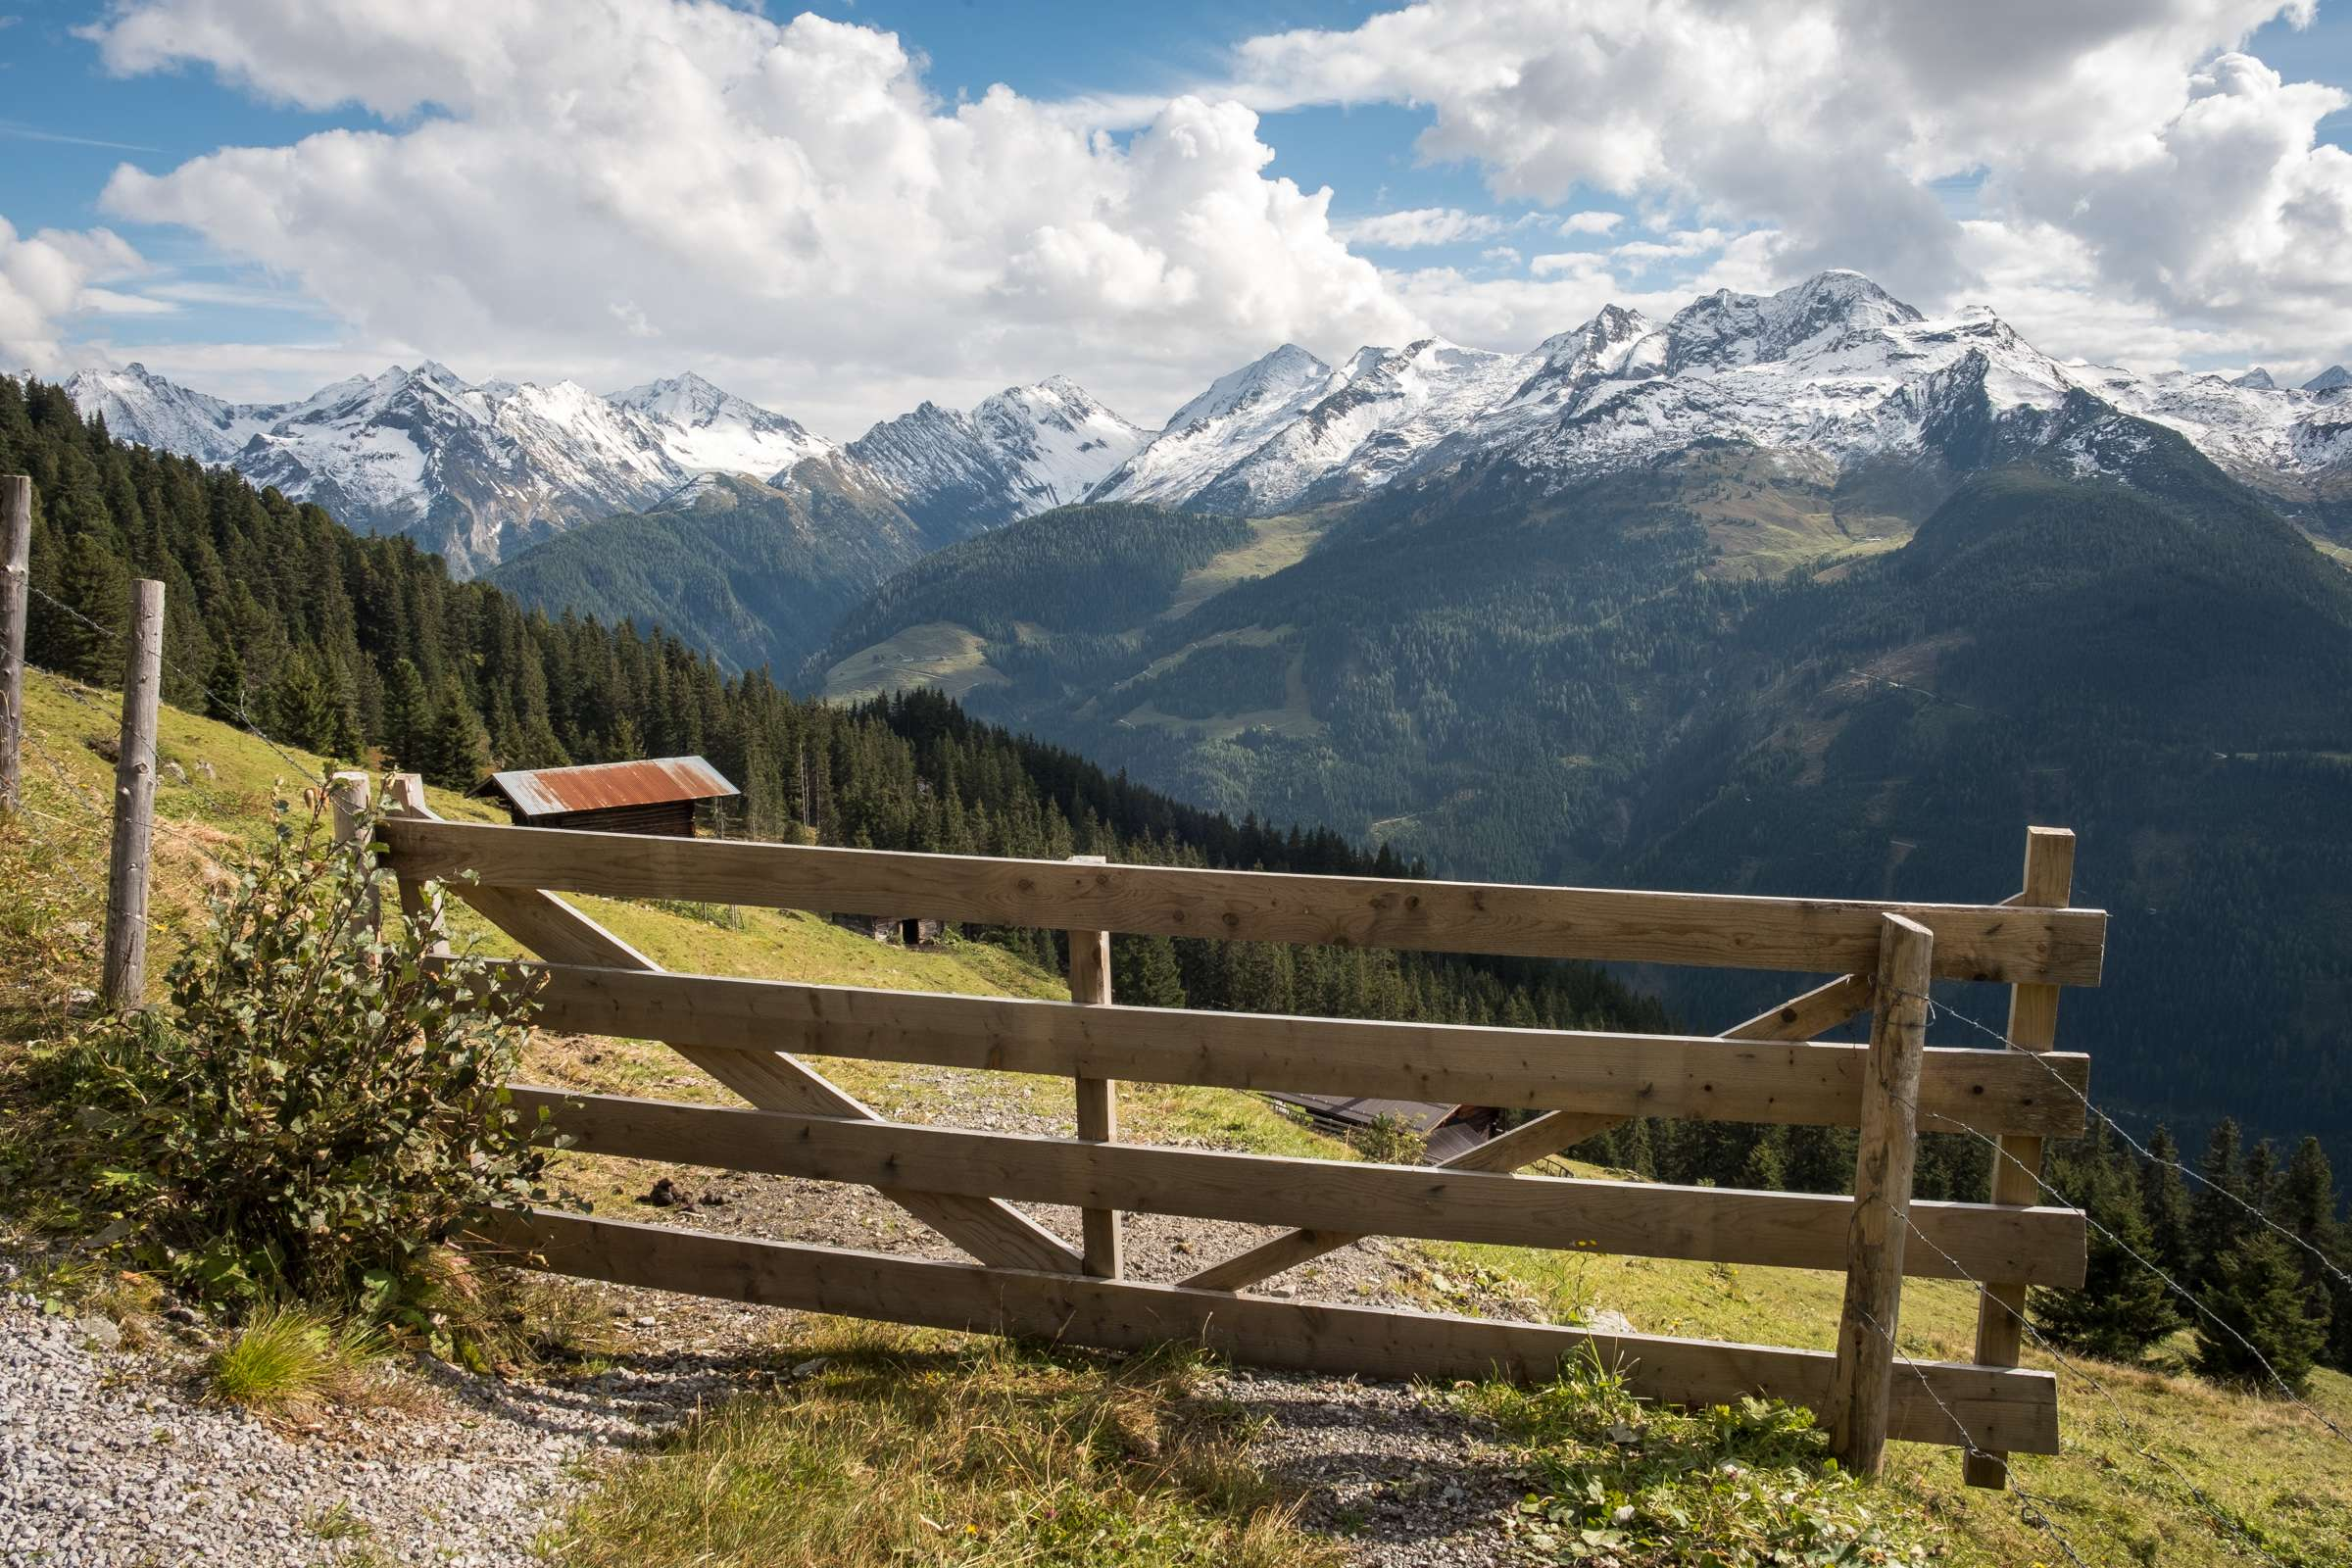 Mountain views with a cute wooden gate with towering mountains behind